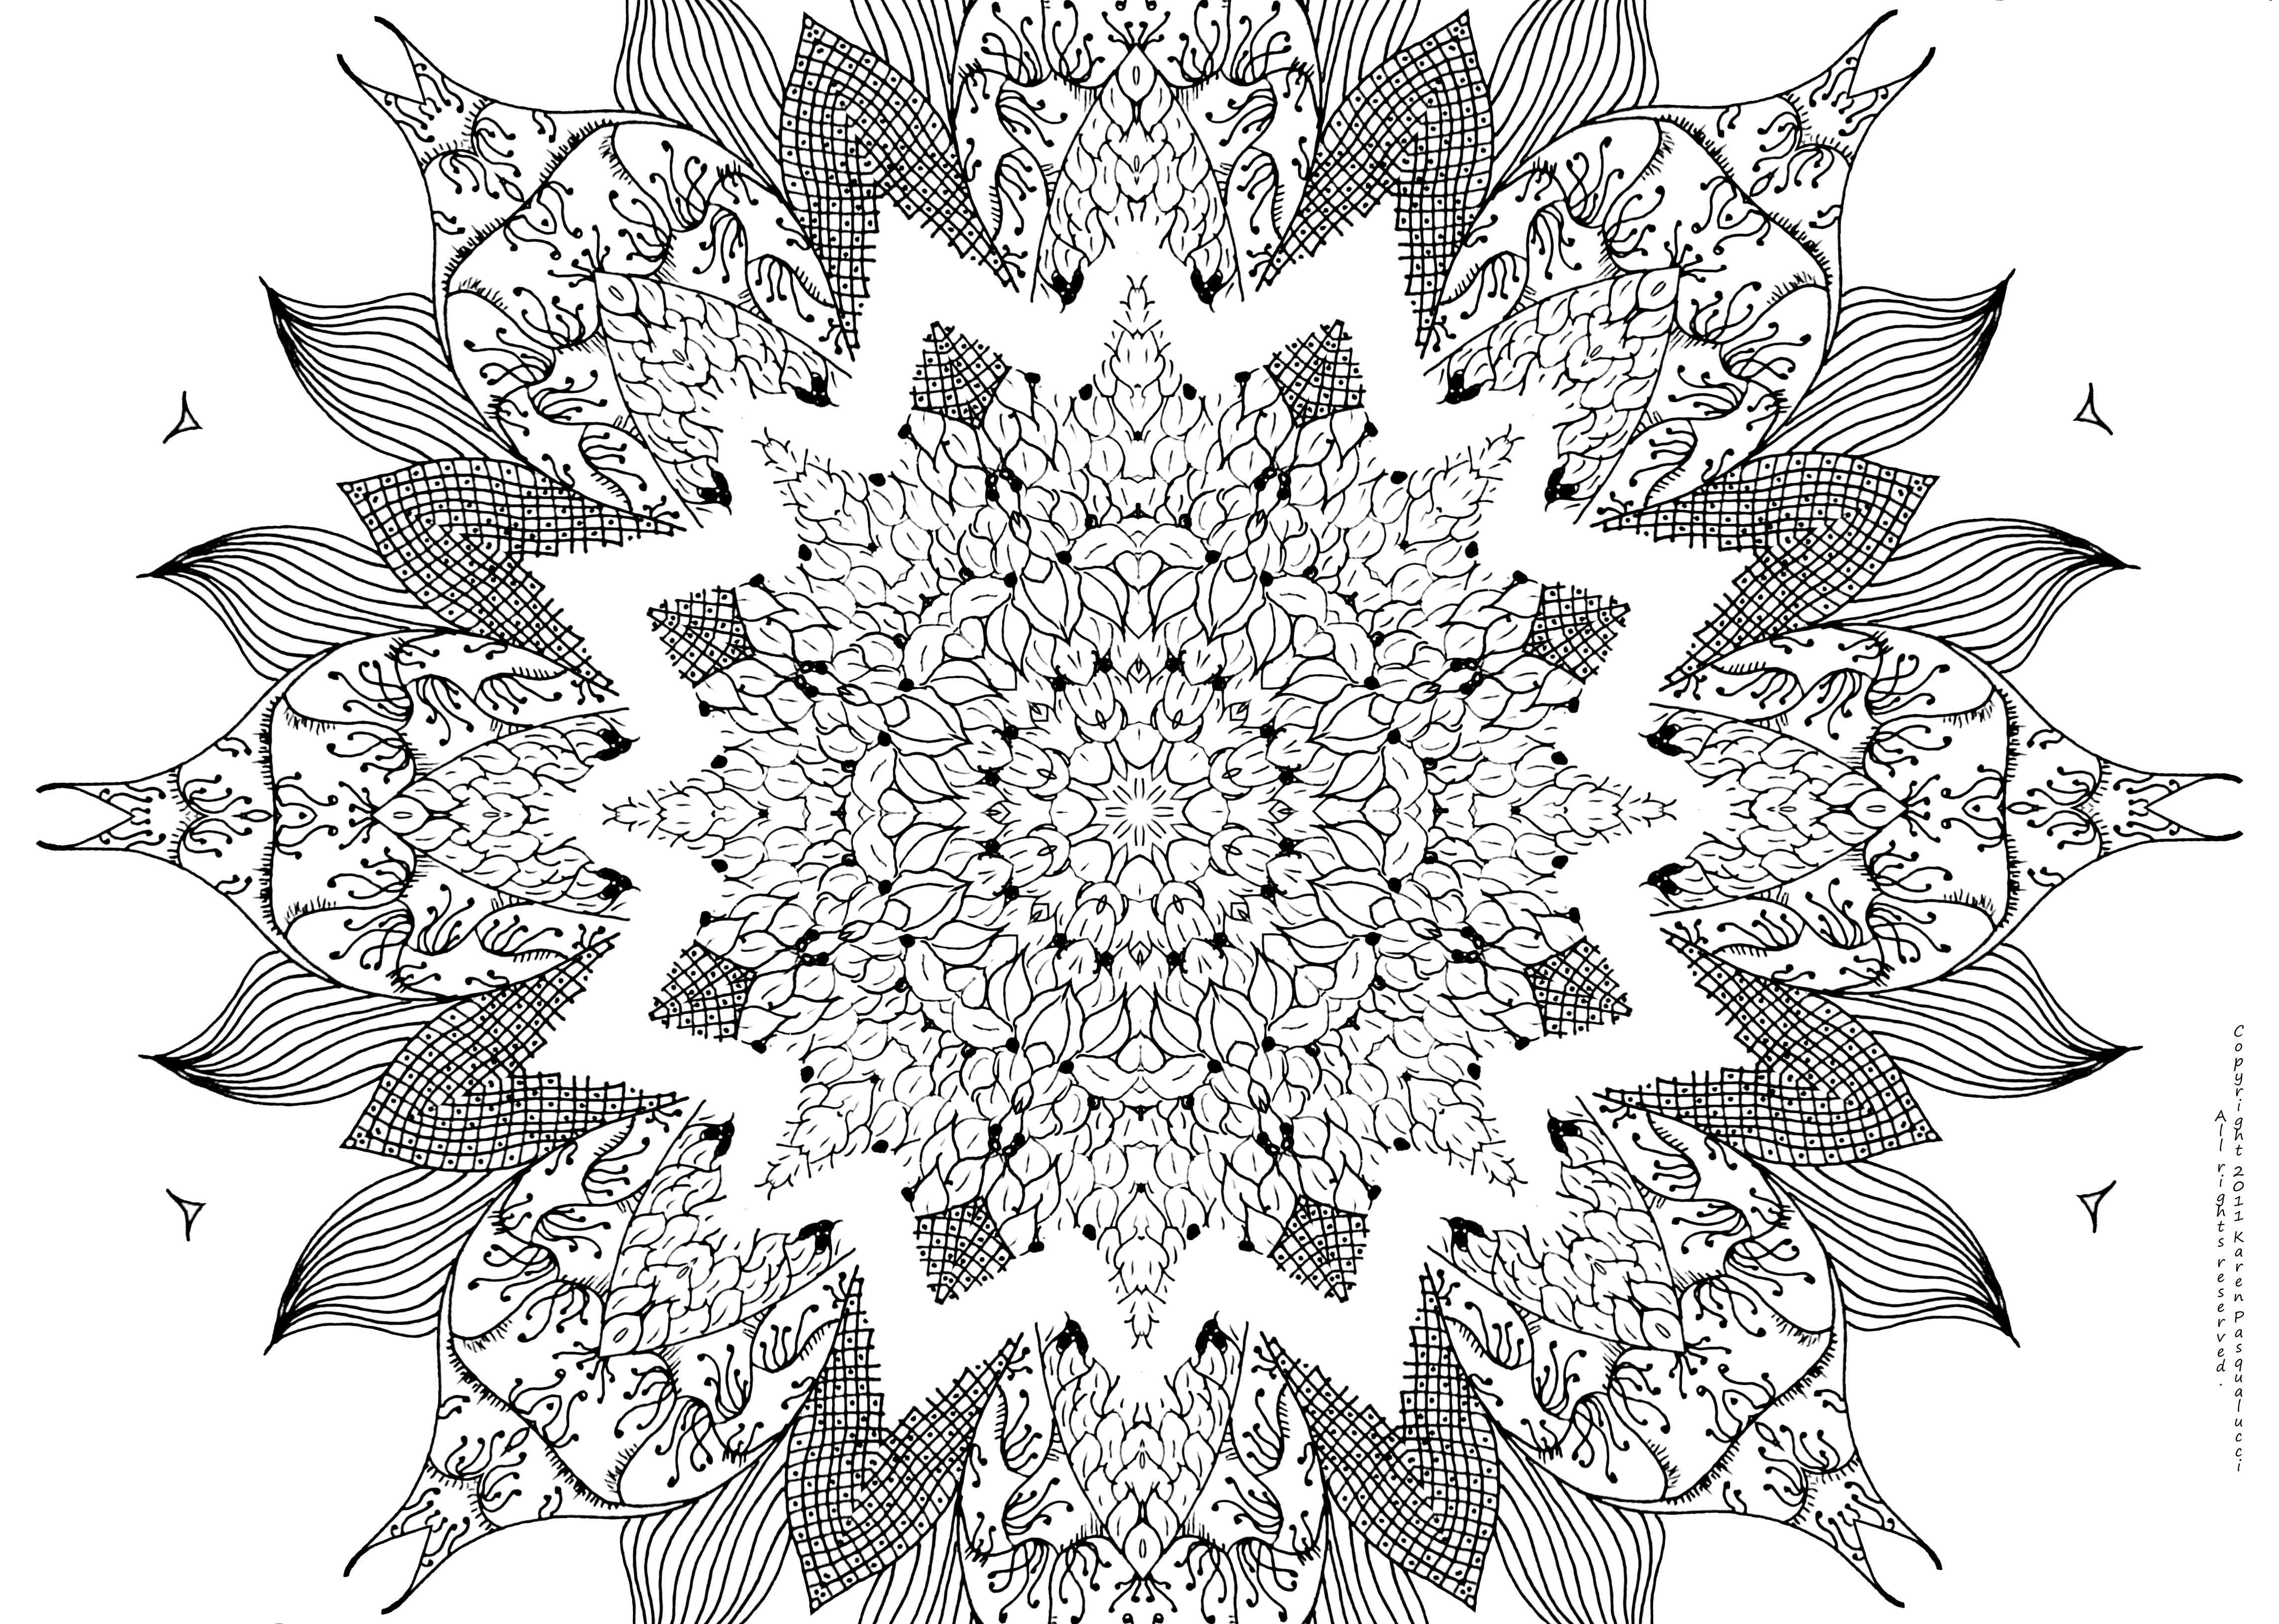 th?id=OIP.ajzi6R7ciab9Pk1htaXN6AEsDV&pid=15.1 further  plex mandala coloring pages printable on elaborate mandala coloring pages likewise elaborate mandala coloring pages 2 on elaborate mandala coloring pages furthermore elaborate mandala coloring pages 3 on elaborate mandala coloring pages moreover elaborate mandala coloring pages 4 on elaborate mandala coloring pages